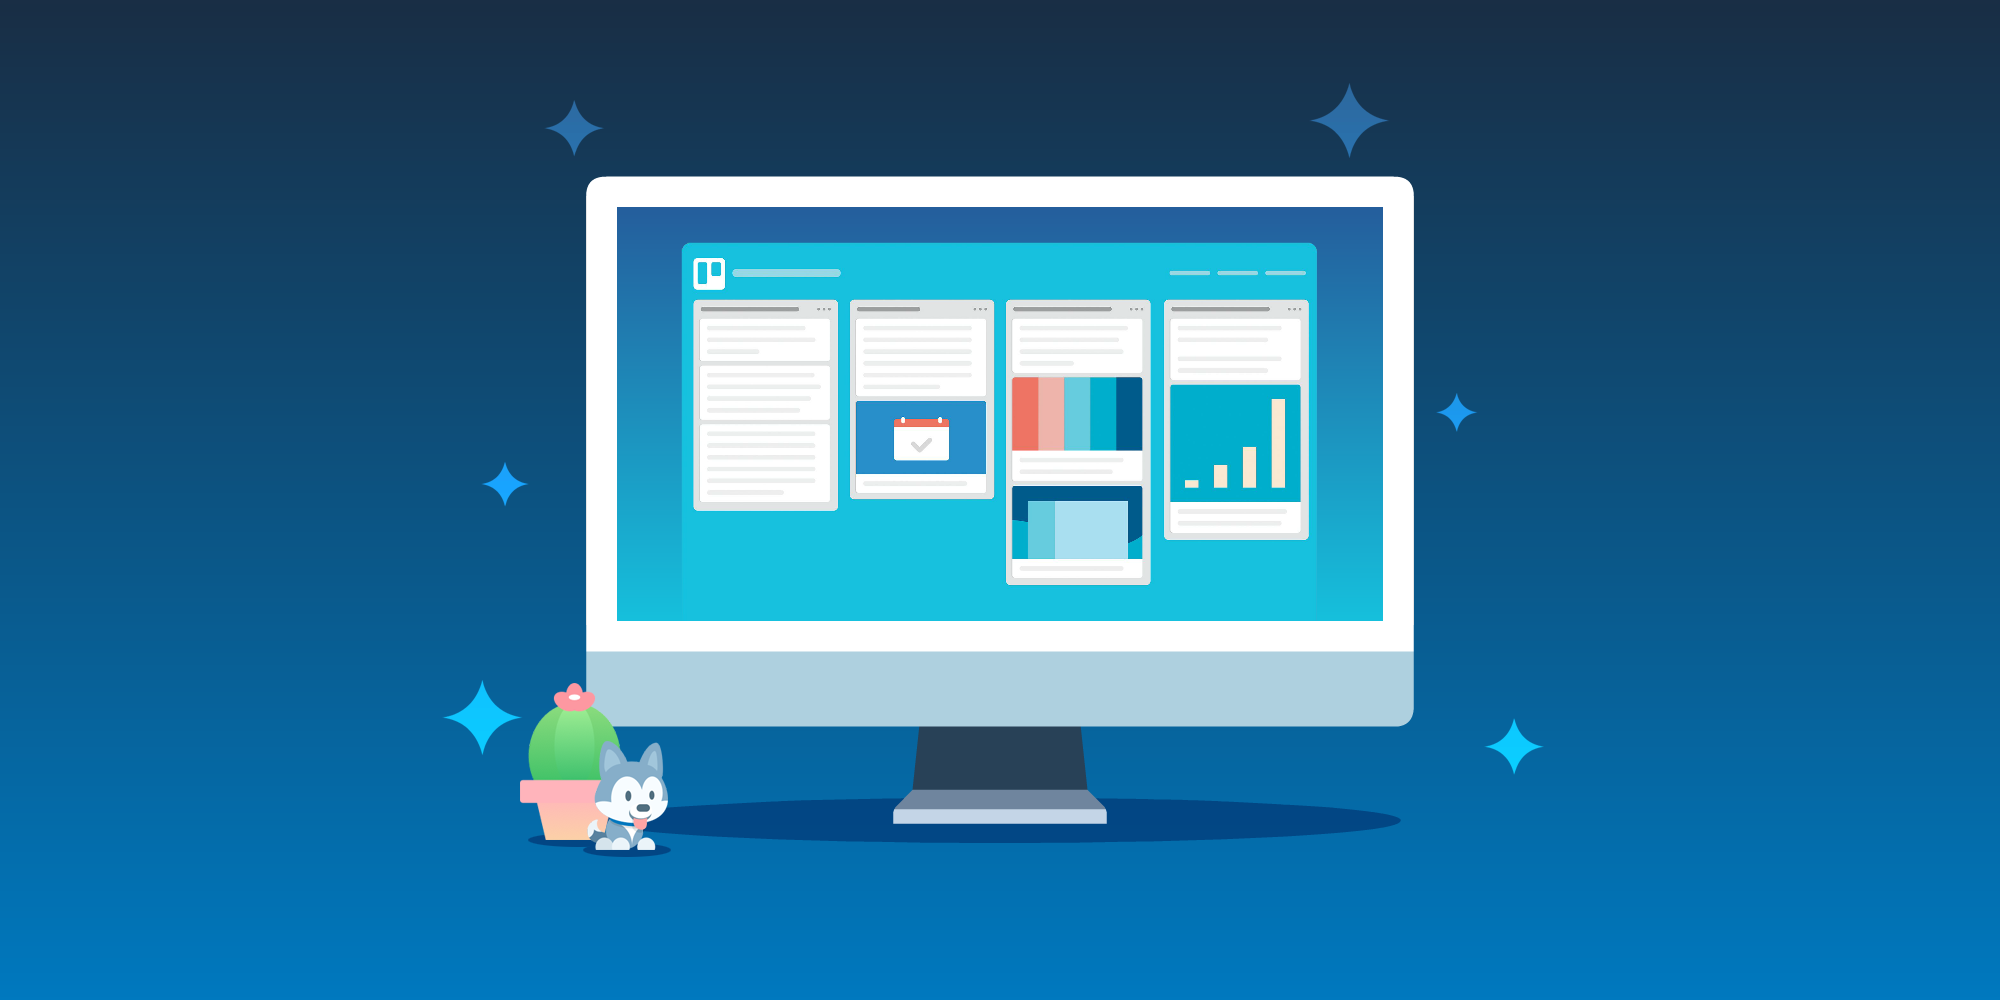 Trello Desktop para Mac y Windows: mayor productividad sin distracciones